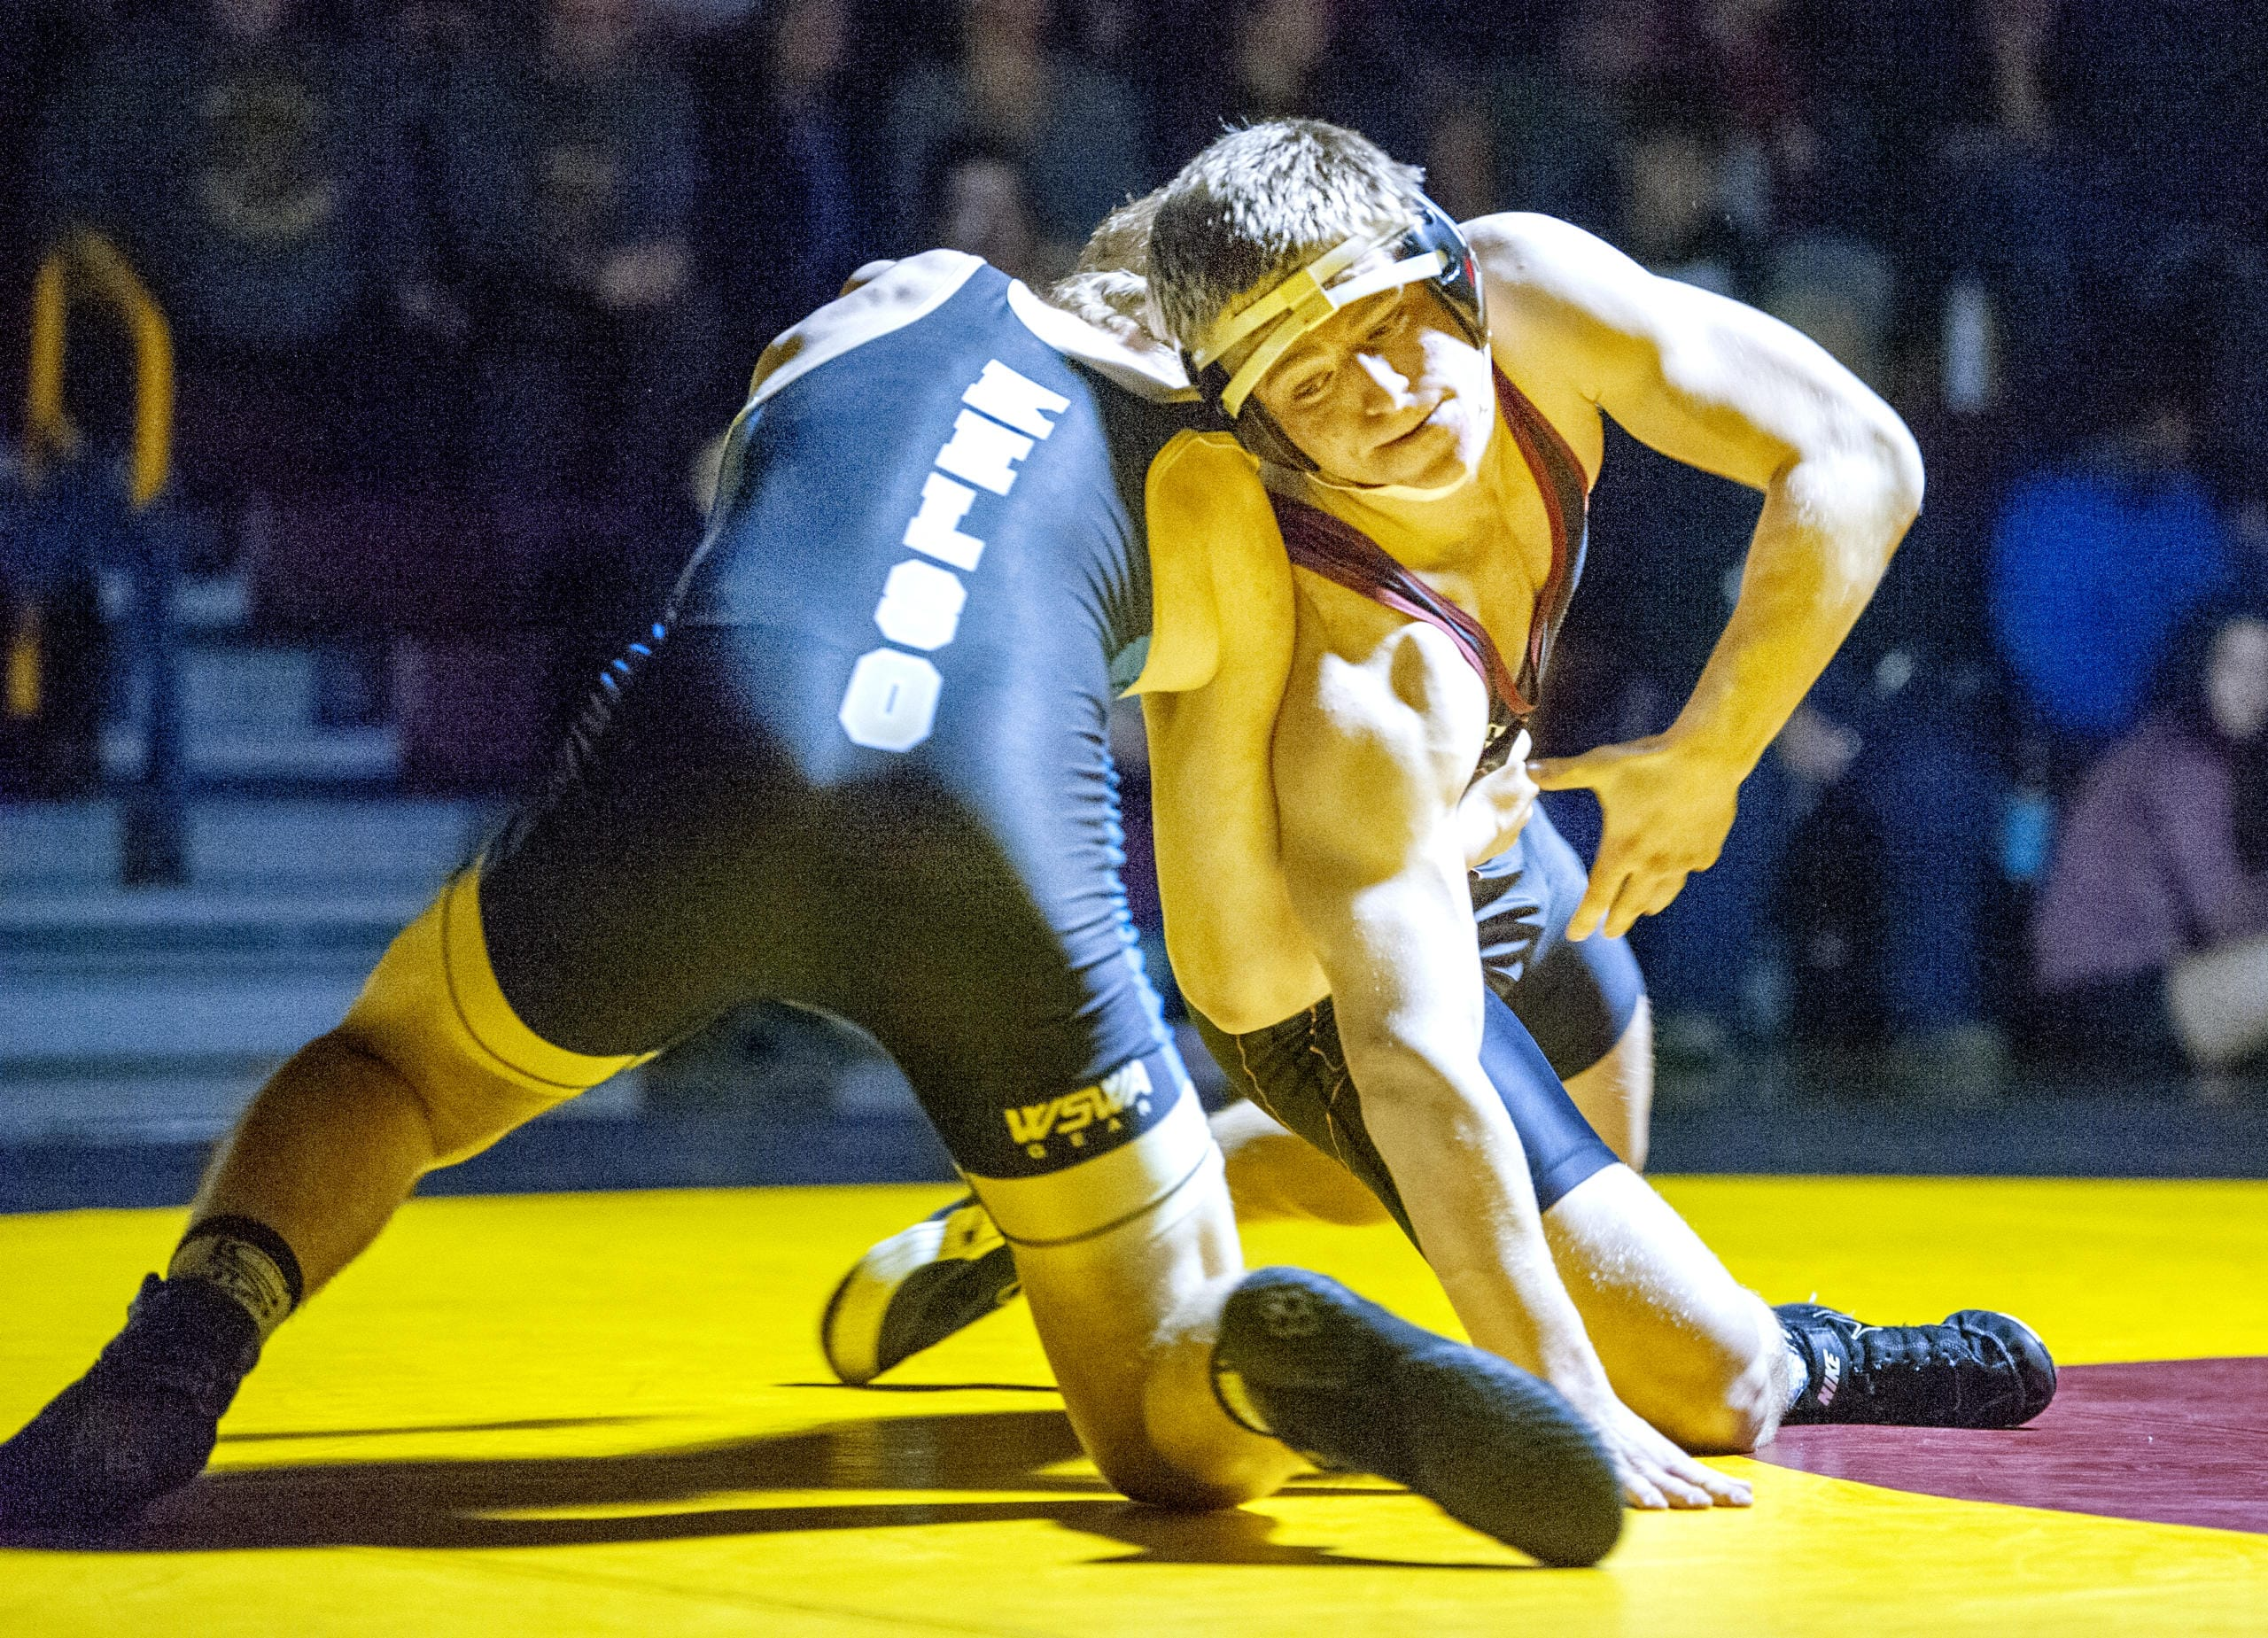 Prairie's Easton Lane (182) earned a second-round pin over Kelso's Micahael Hause in a 3A Greater St. Helens League dual on Wednesday at Prairie High School. (Joshua Hart/The Columbian)